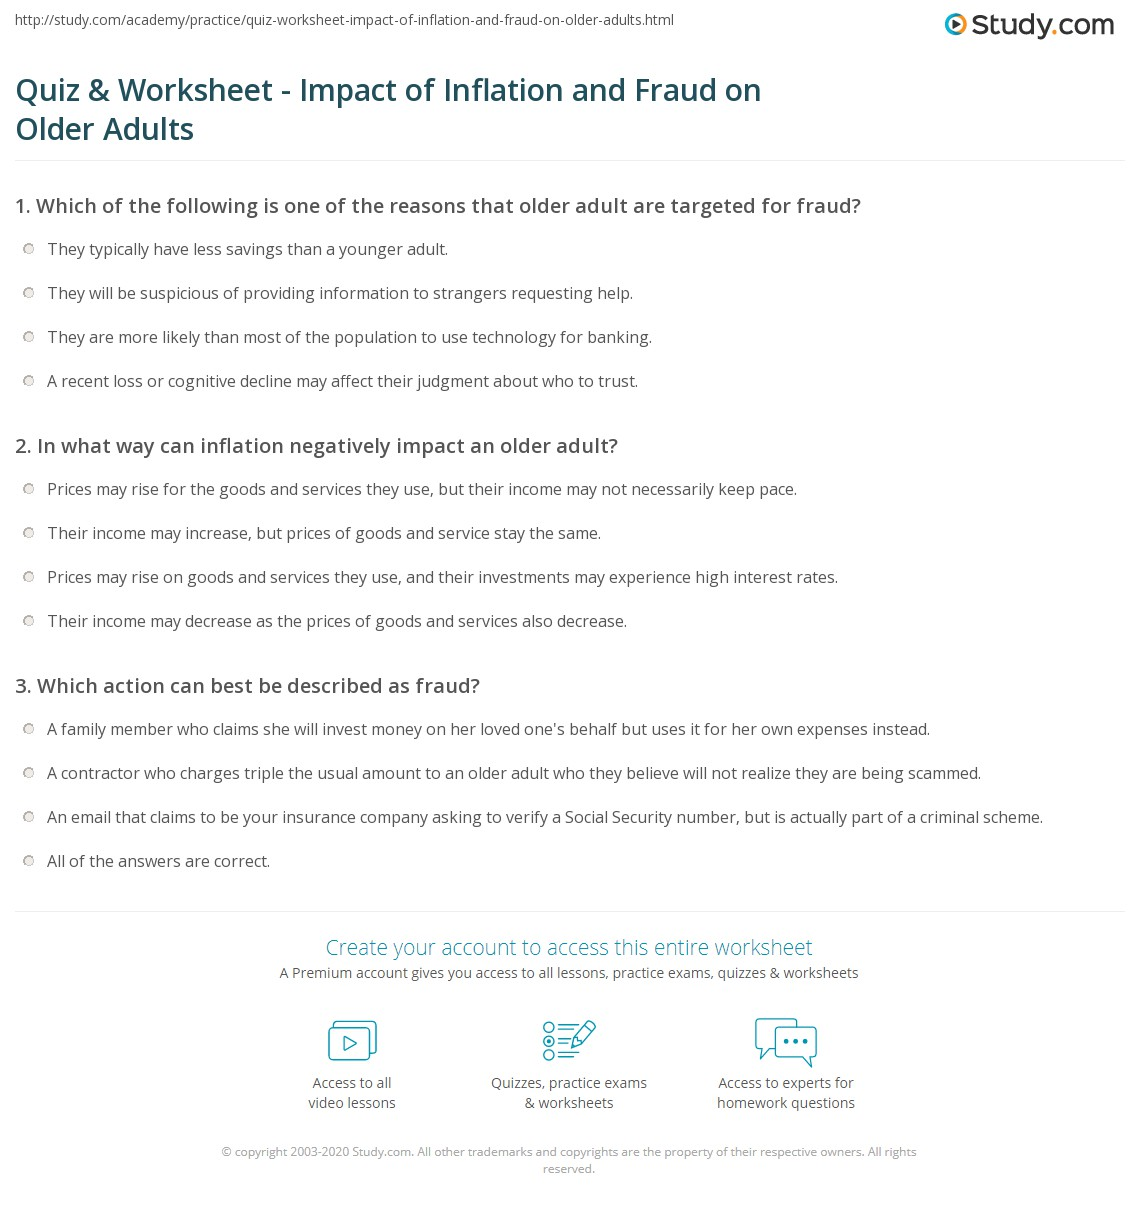 Quiz & Worksheet Impact of Inflation and Fraud on Older Adults